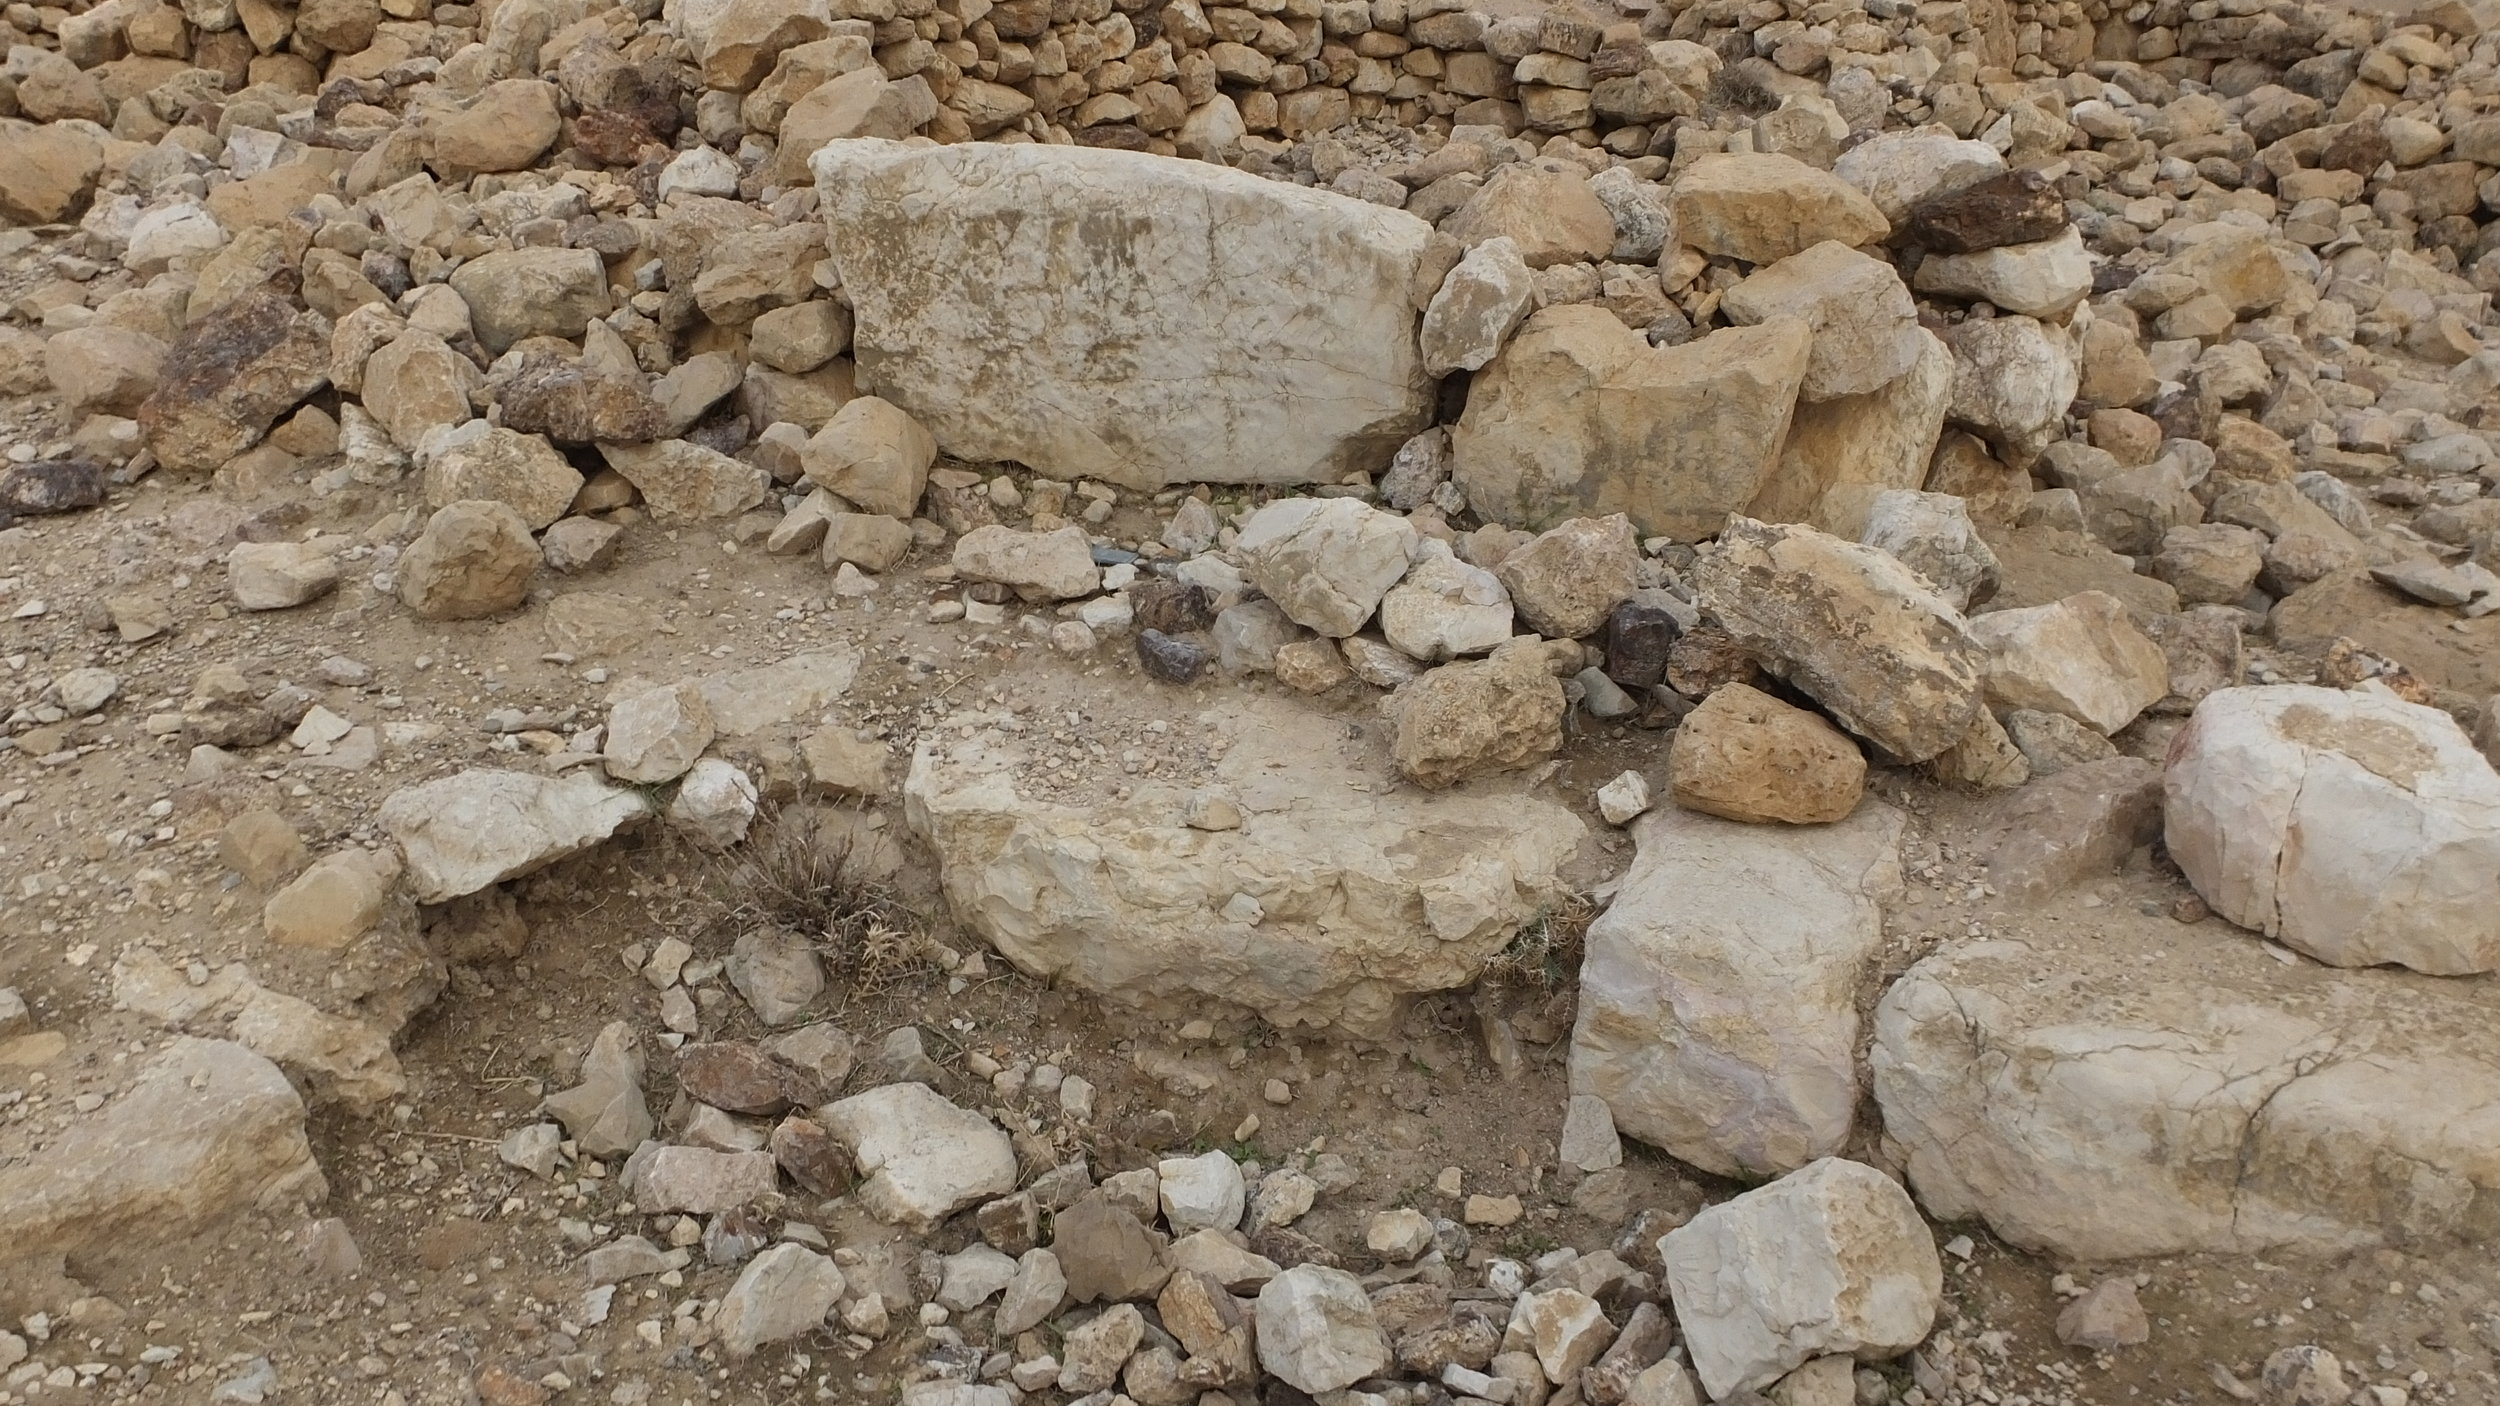 (10) In Some Places, an Earlier Wall is Visible Underneath the Remains Visible upon the Surface.jpg